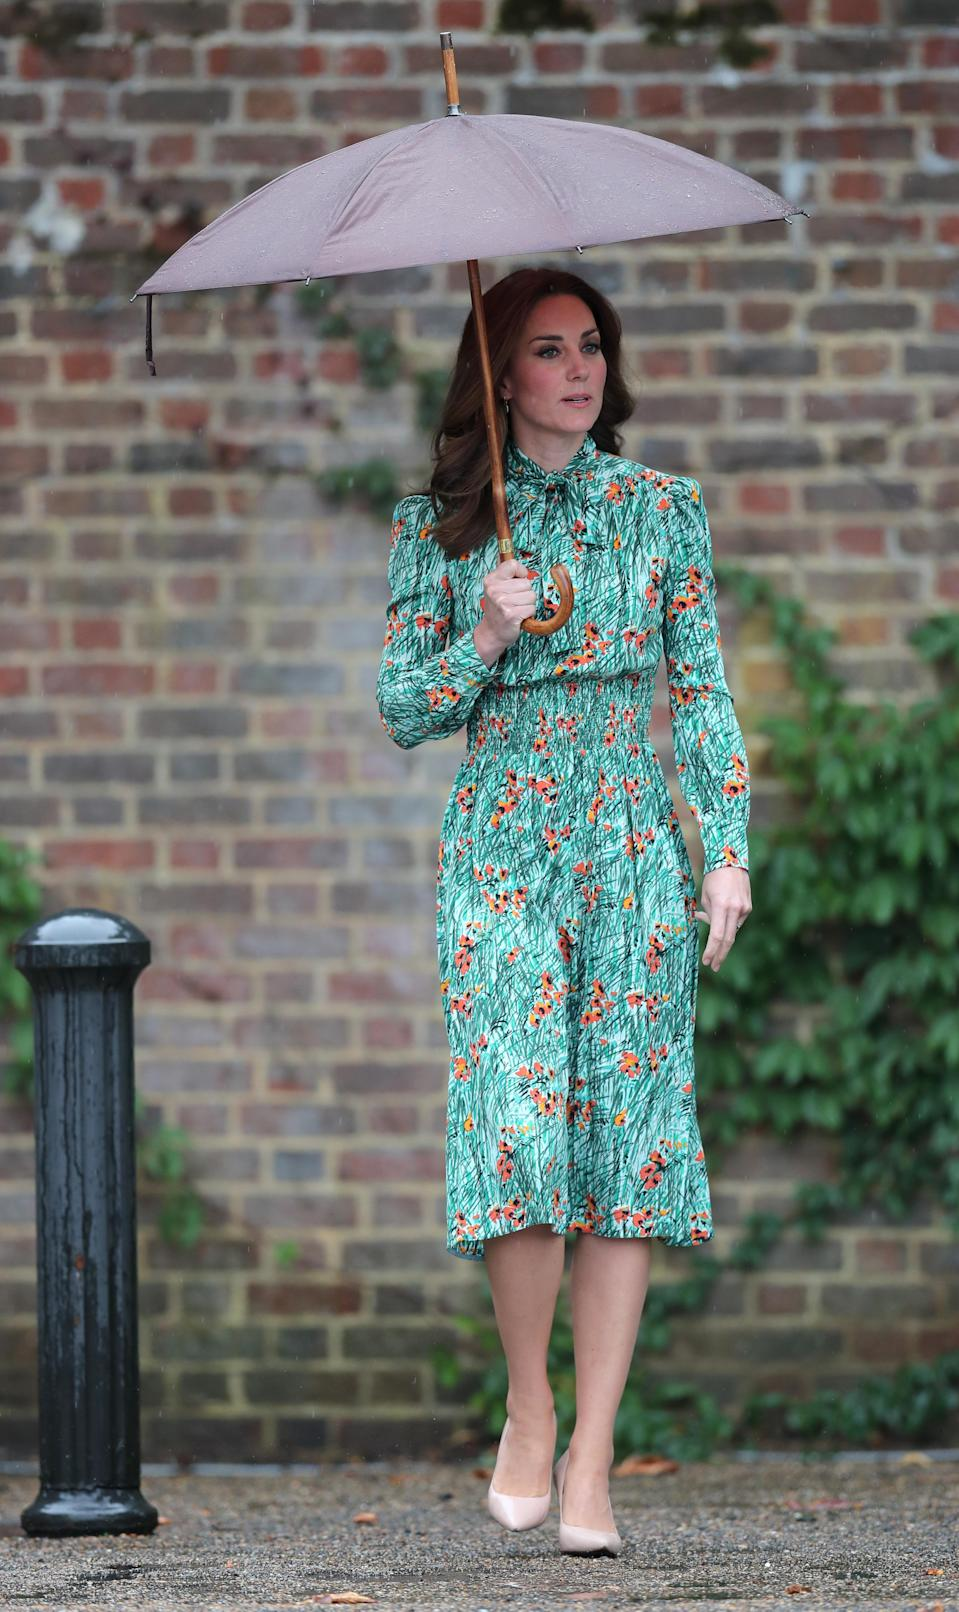 <p>The Duchess paid tribute to the late Princess Diana in a floral green Prada dress. Costing £1,420, the midi dress was worn to Kensington Palace's famous White Garden.<br><i>[Photo: PA]</i> </p>